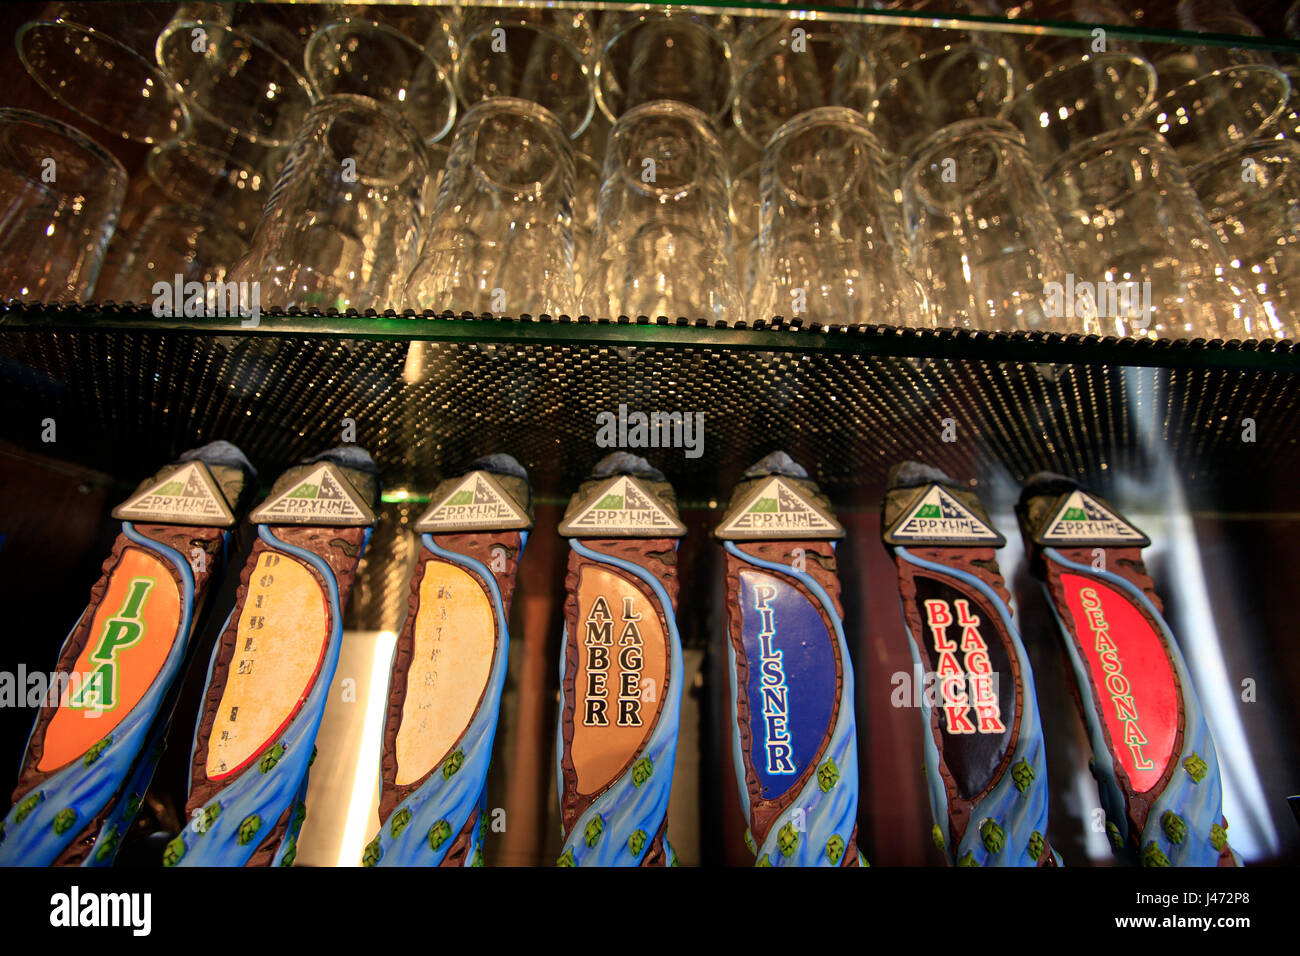 Beer pumps at Eddyline Brewery, Richmond, Nelson, New Zealand - Stock Image